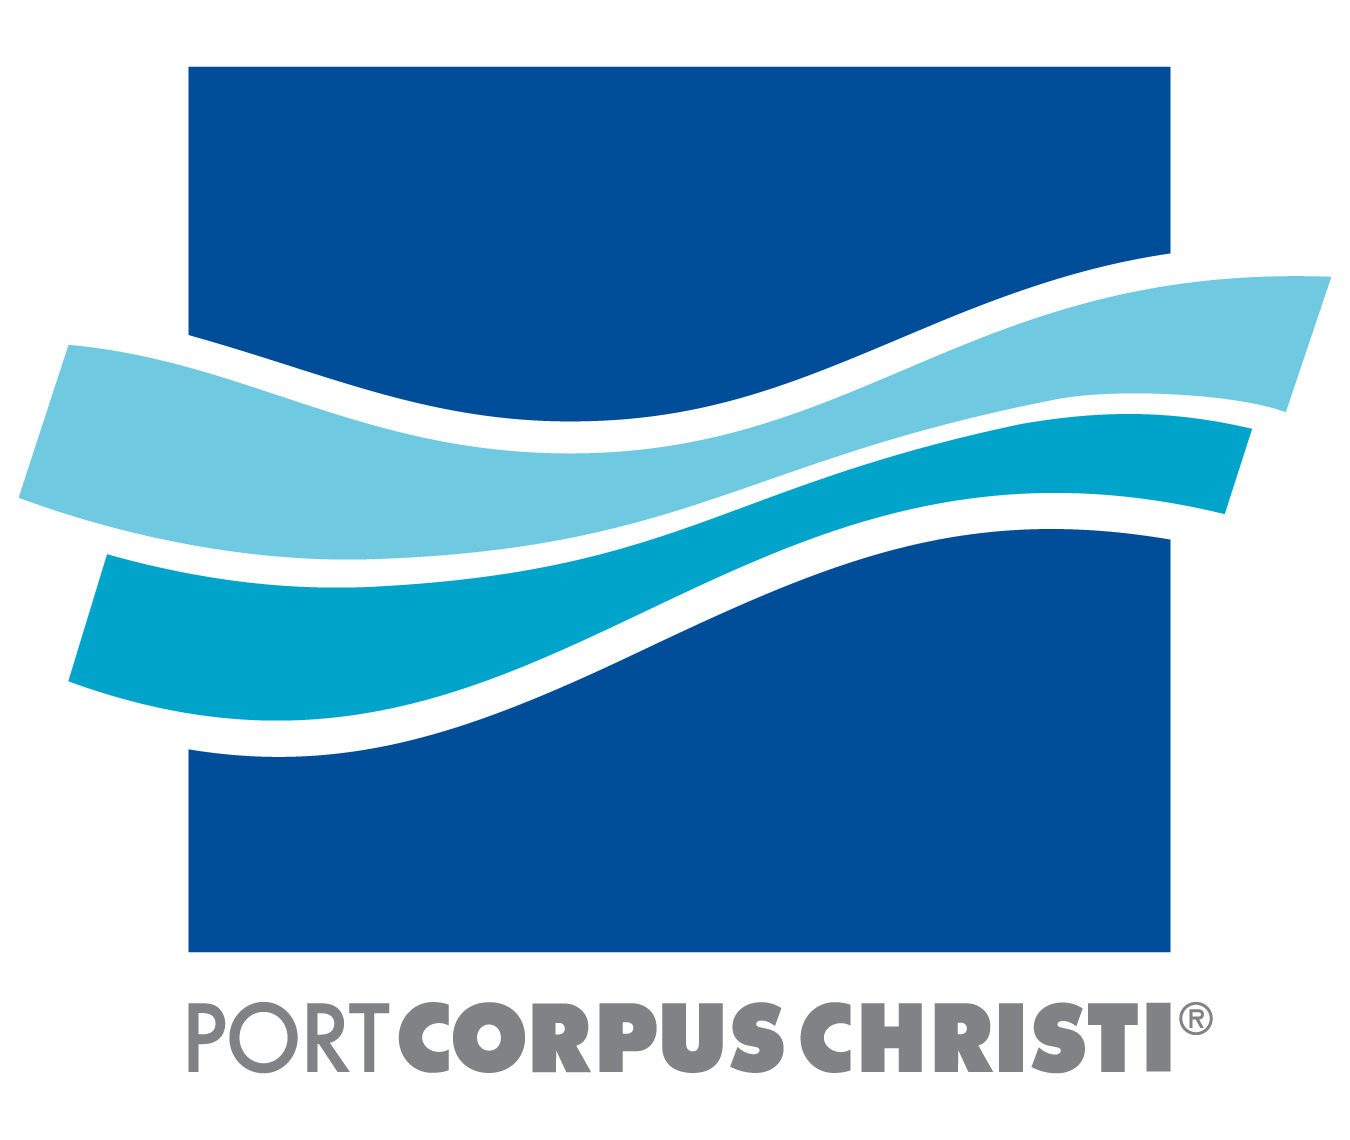 PortCC-2016-logo-stacked